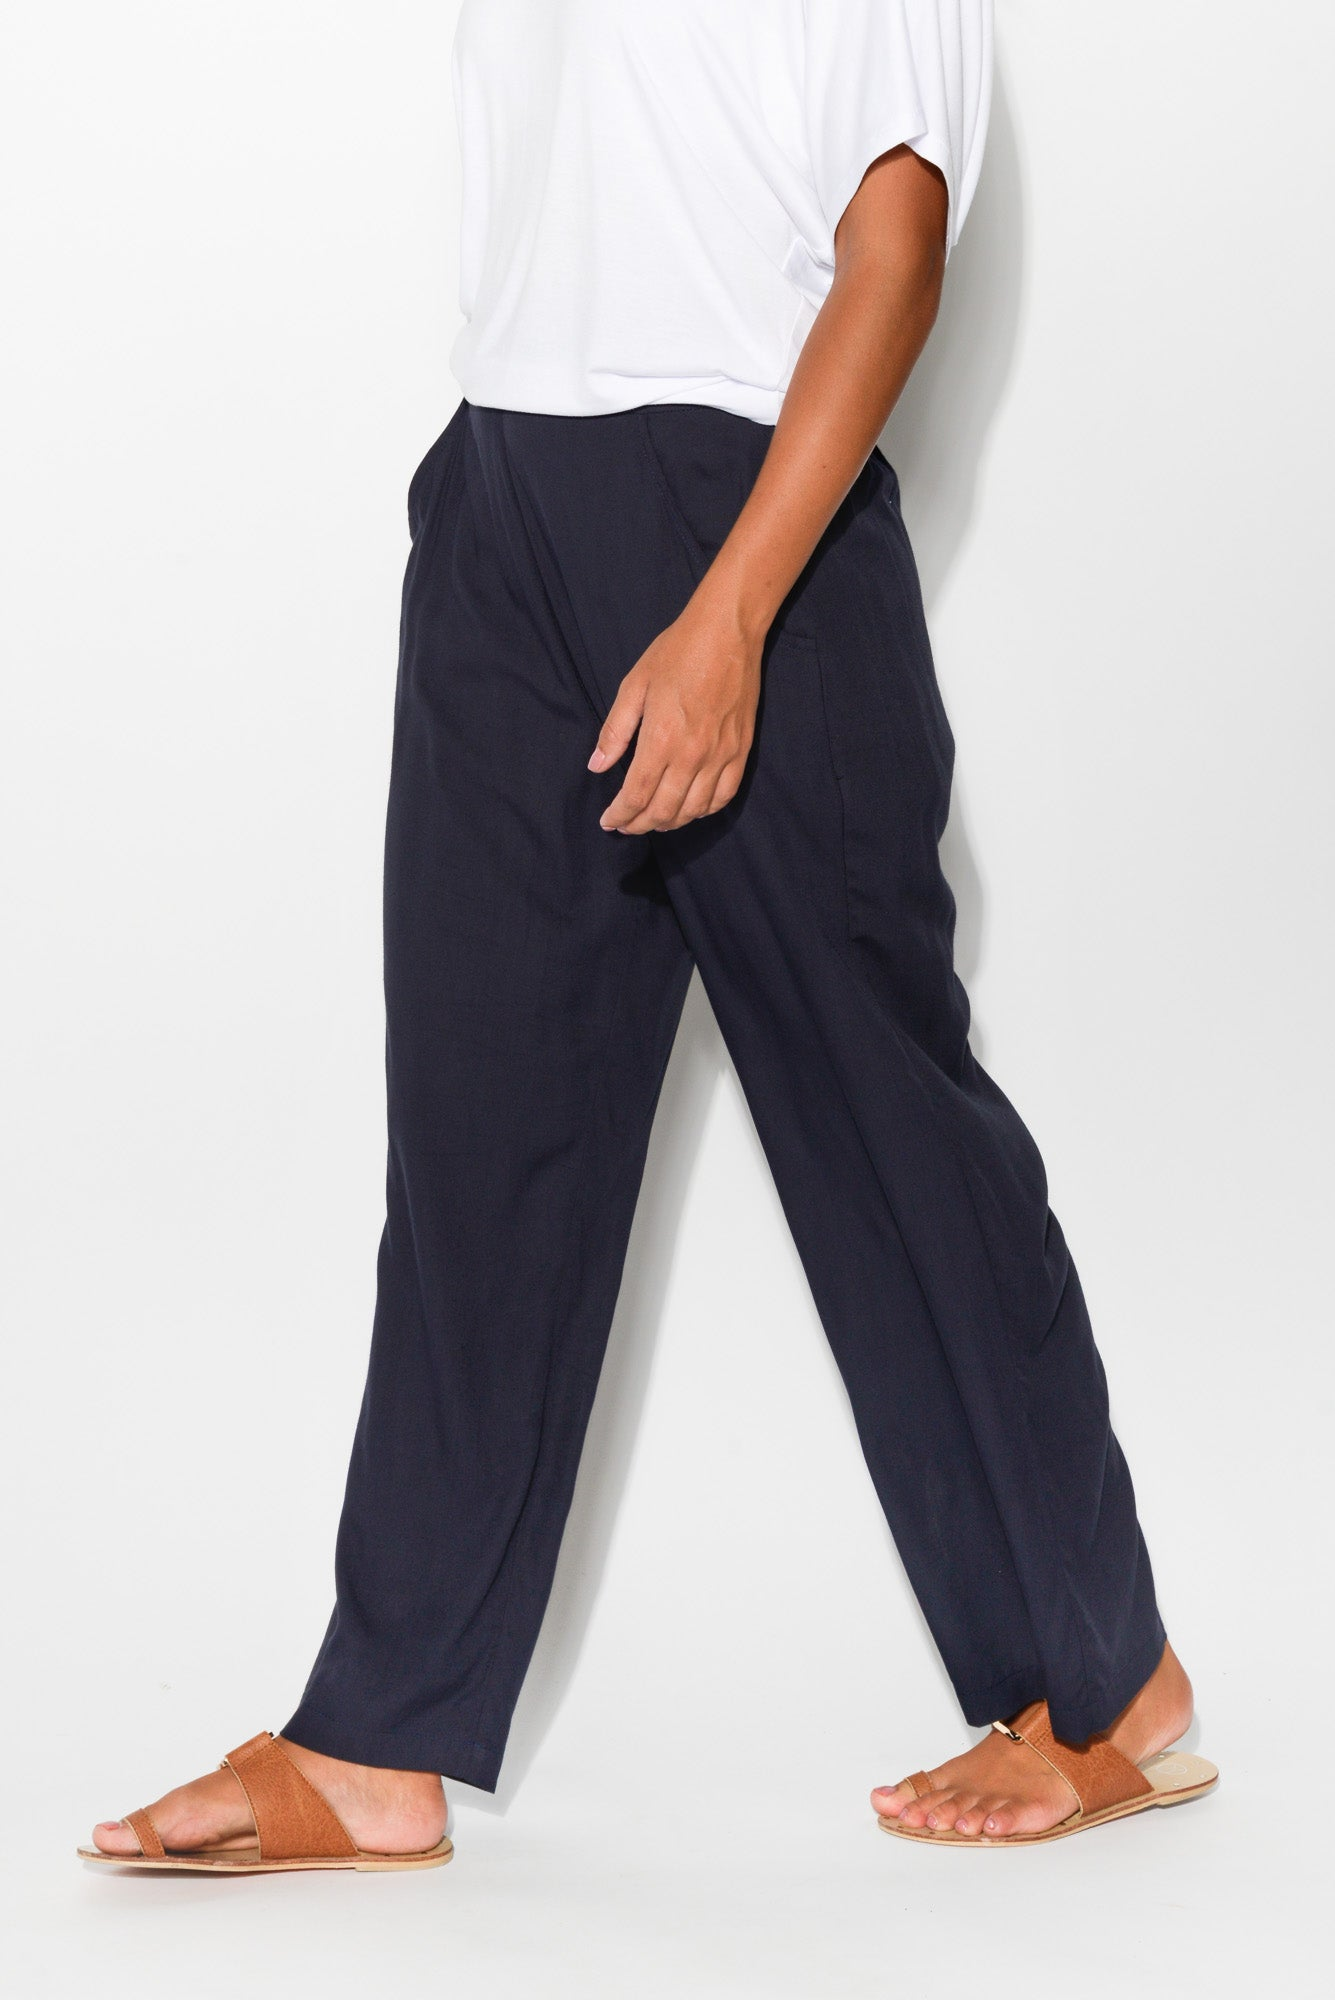 Lucy Navy Pant - Blue Bungalow